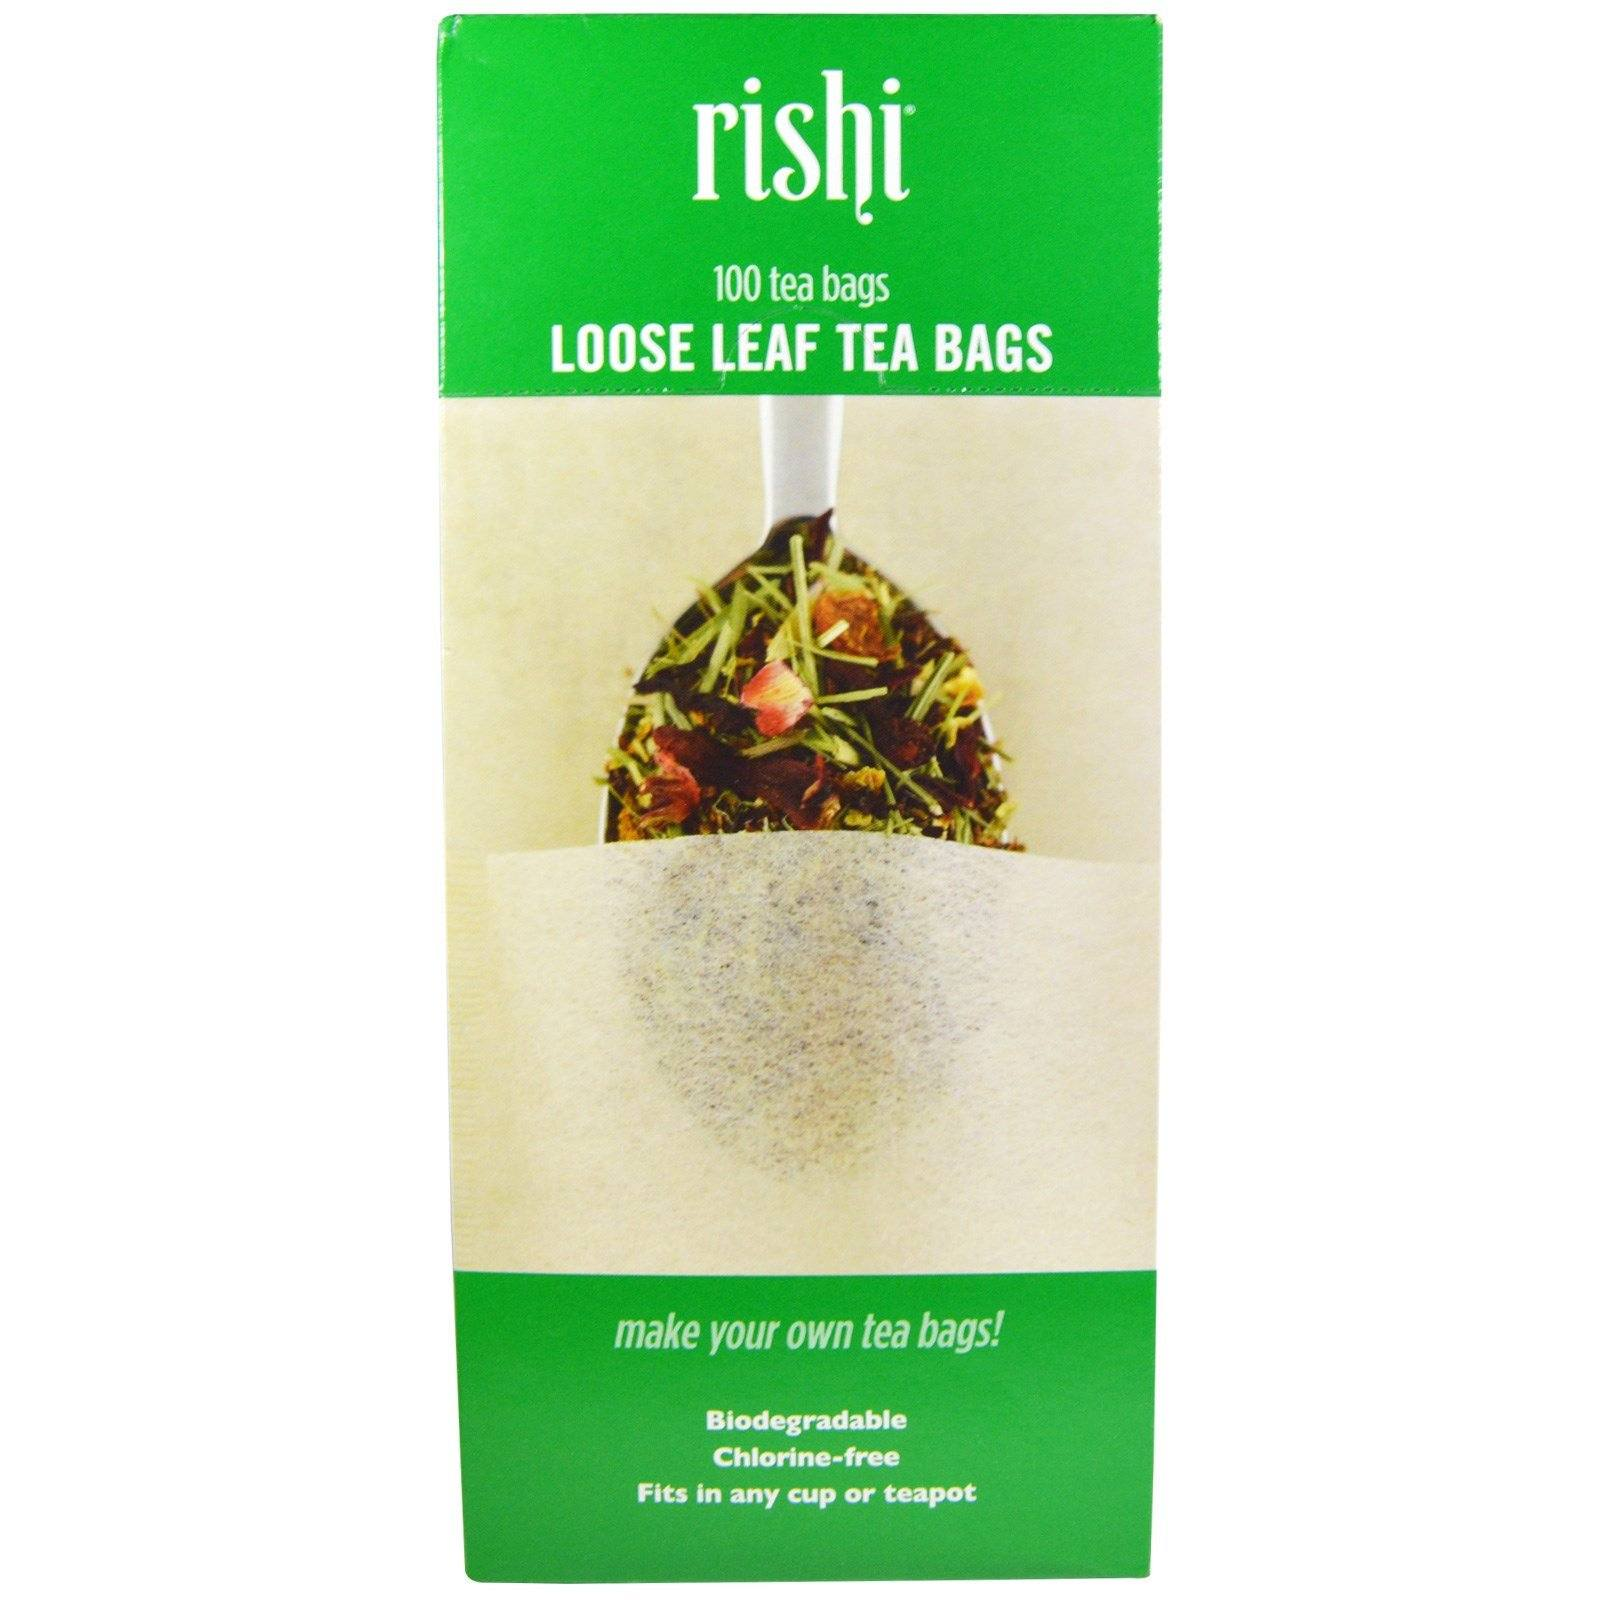 Food & Drink - Rishi -Loose Leaf Tea Bags, 100 Filters